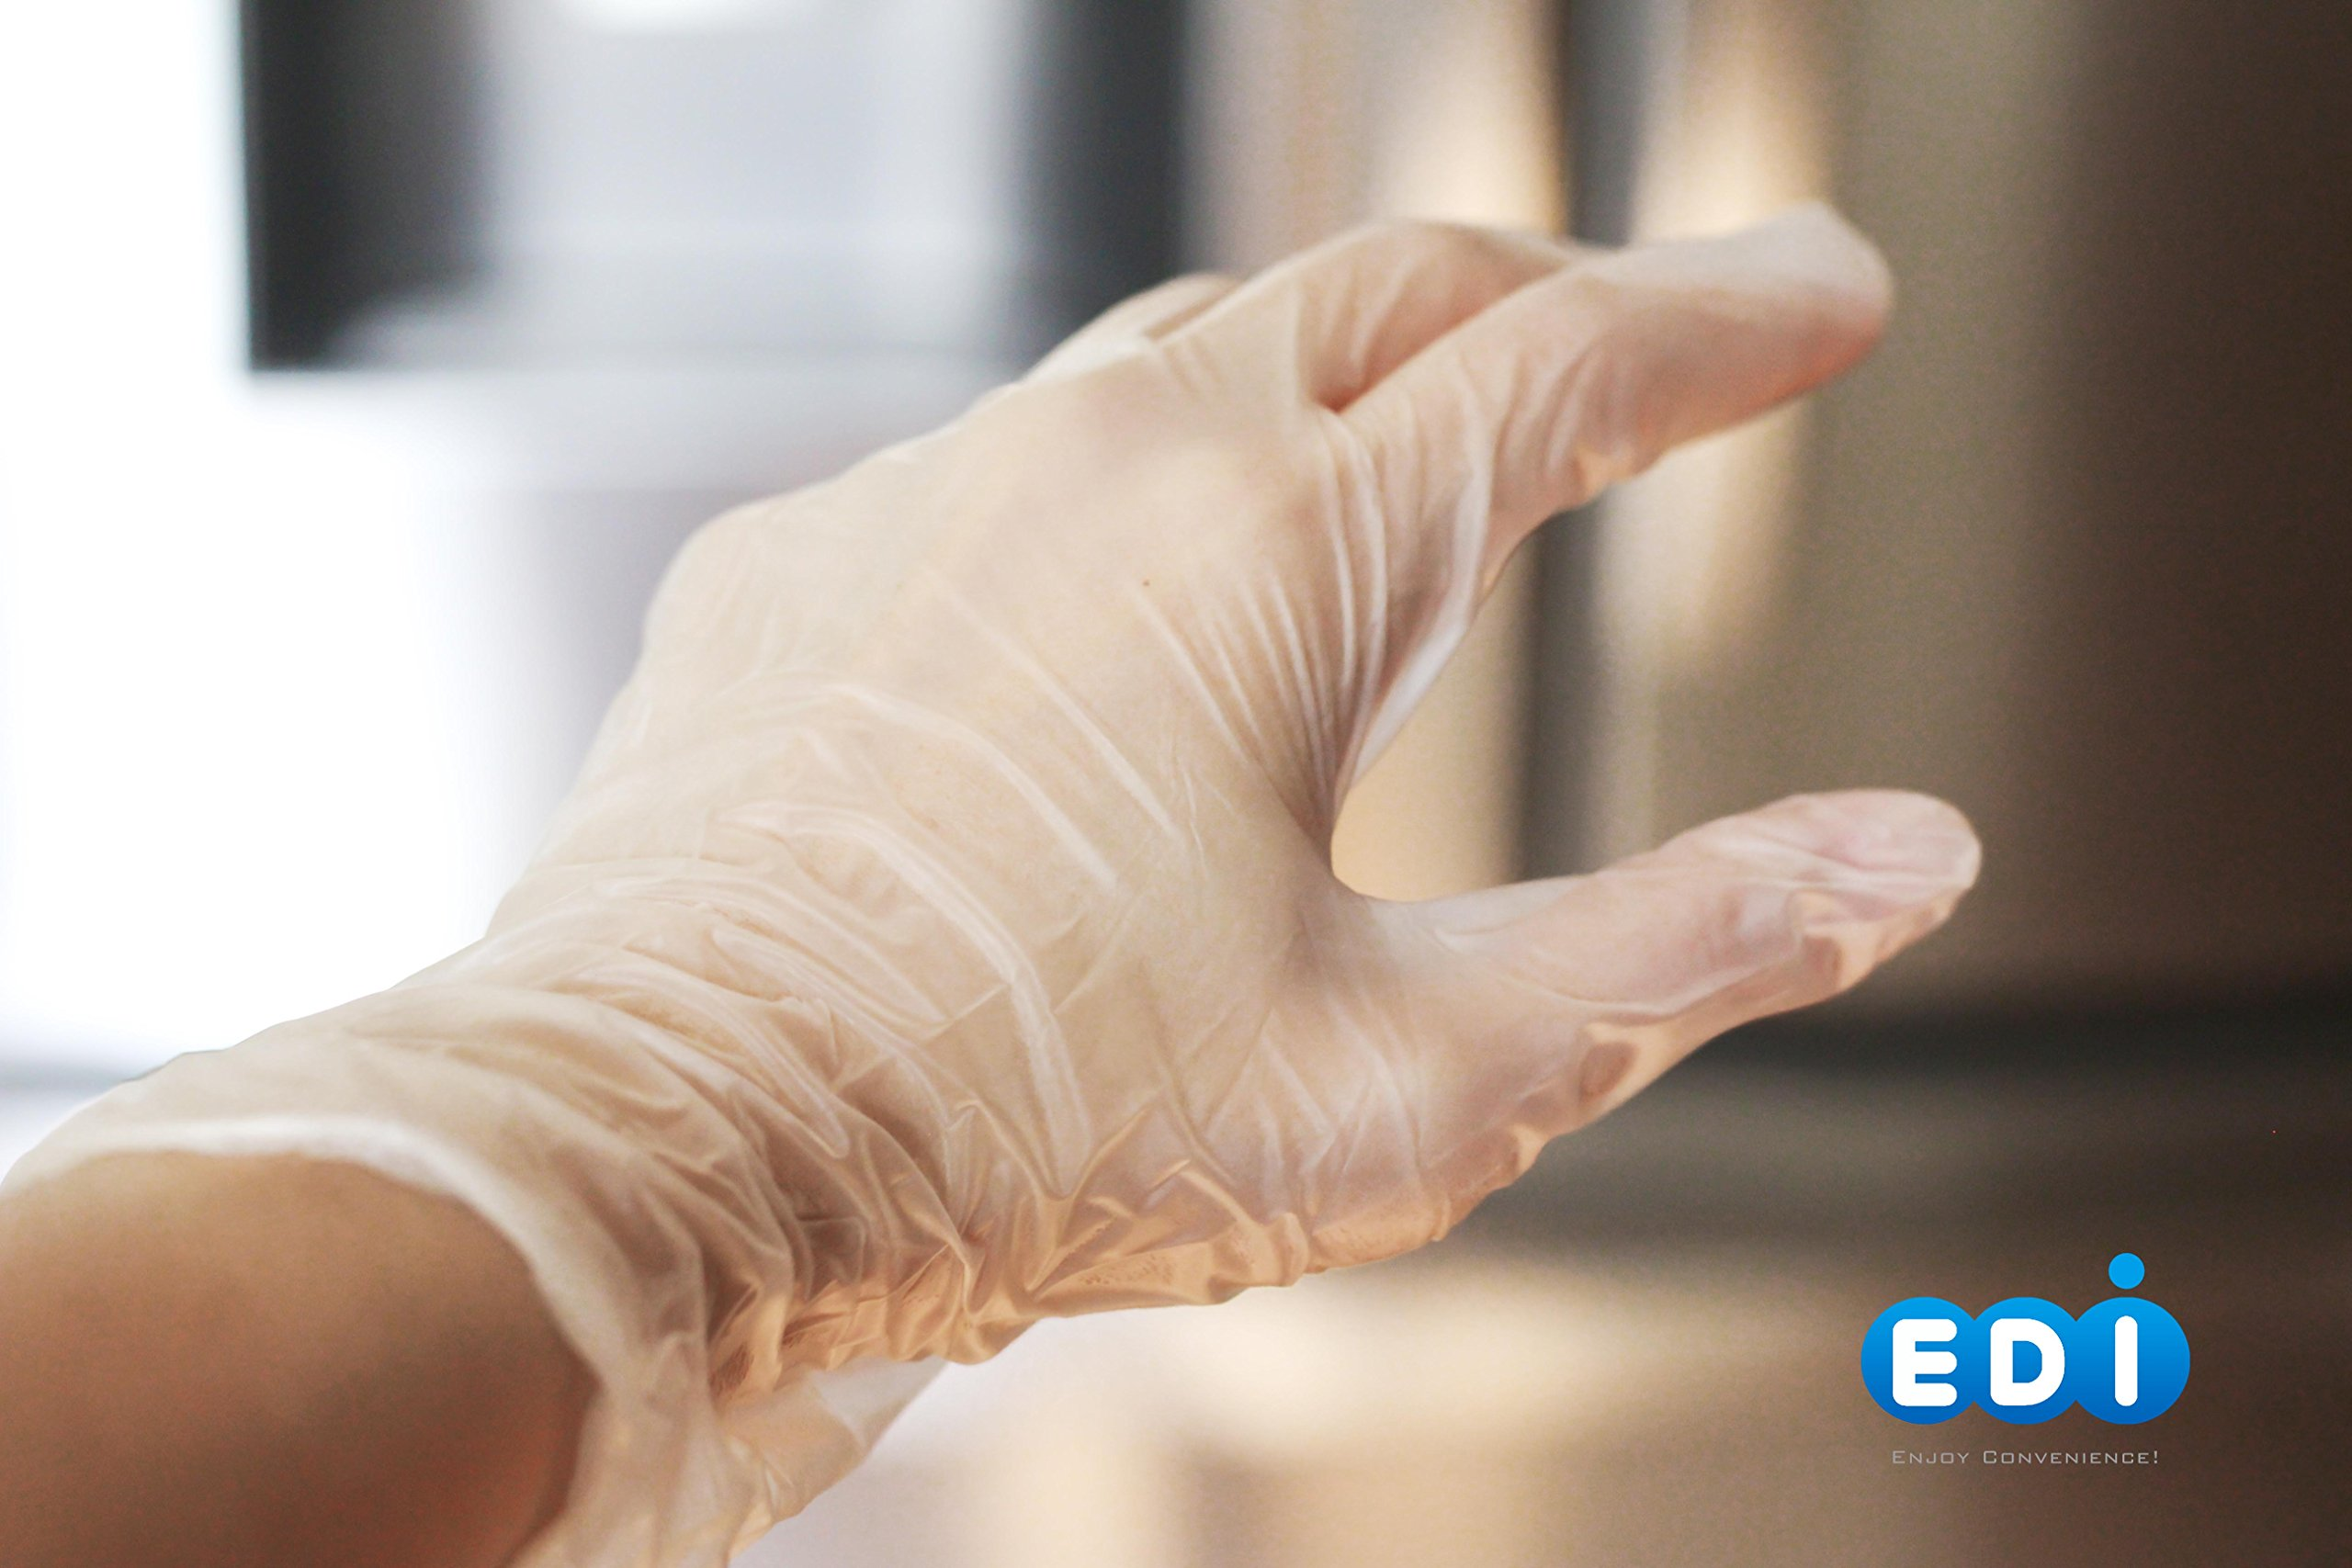 EDI Clear Powder Free Vinyl Glove,4.3 mil,Disposable Glove,Industrial Glove,Clear, Latex Free and Allergy Free, Plastic, Work, Food Service, Cleaning,100 Gloves per Box (1000, Large) by EDI SUPPLIES (Image #2)